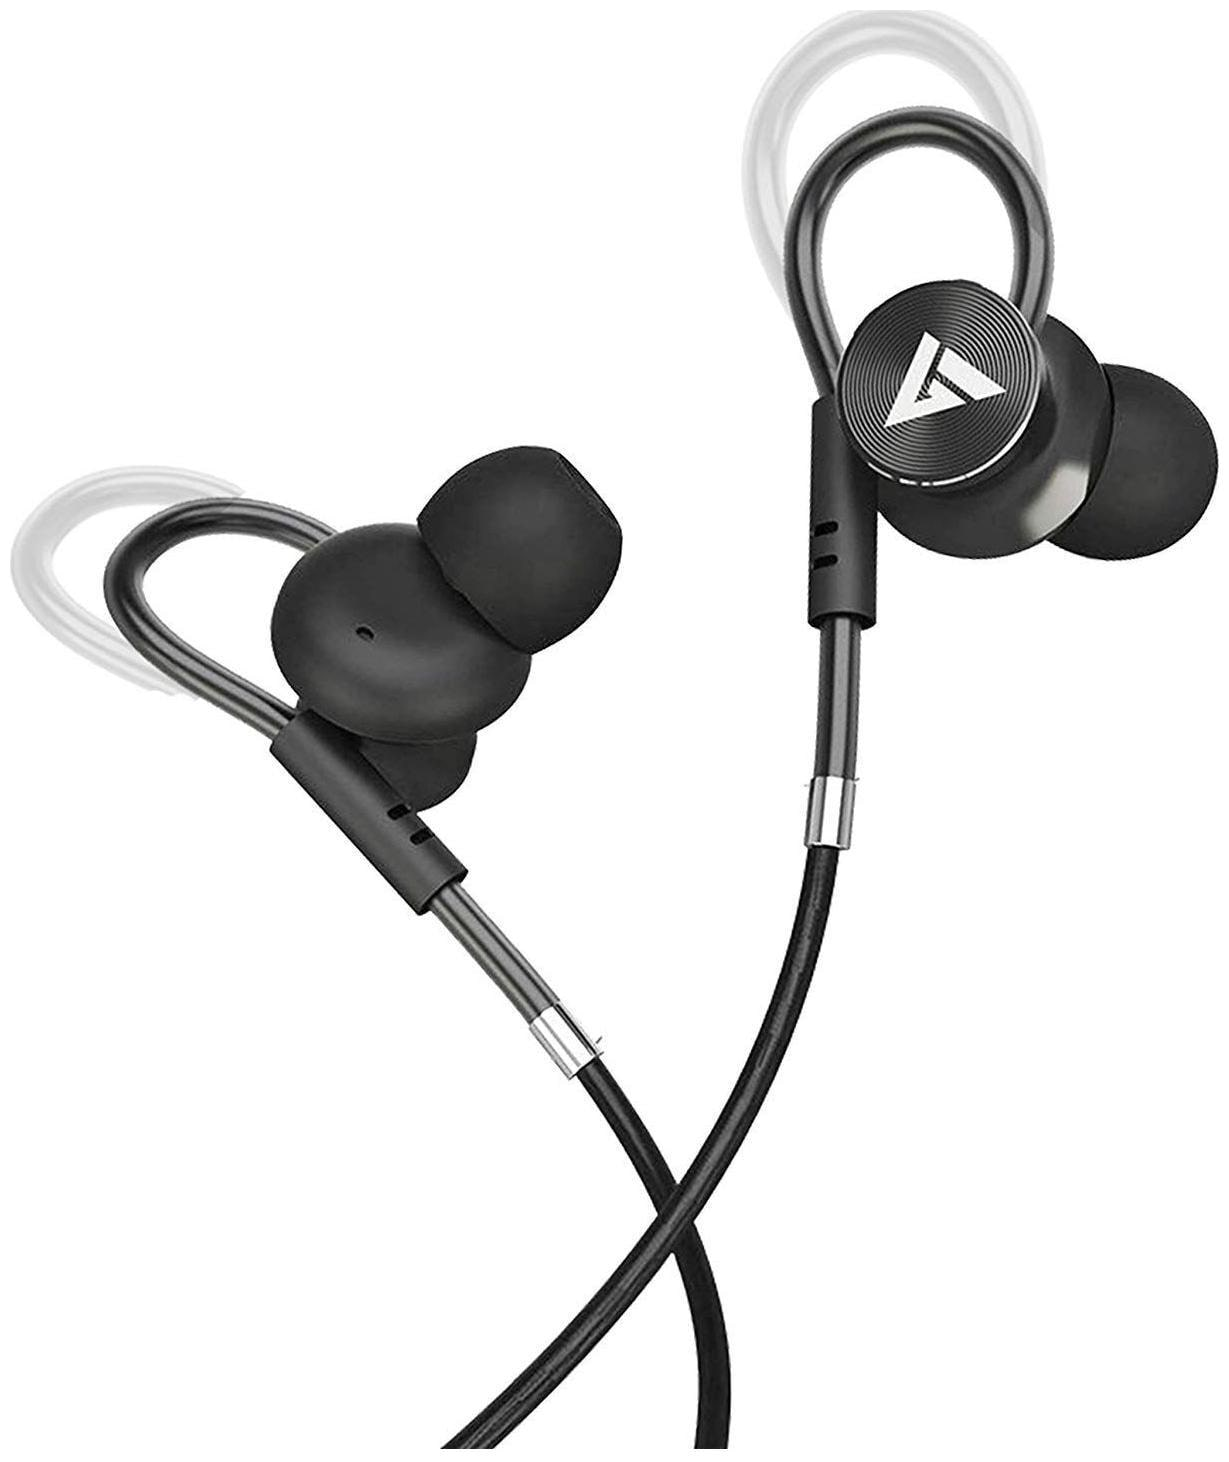 Boult Audio BassBuds Loop in-Ear Wired Earphones withCustomizable Ear Loop (Black)